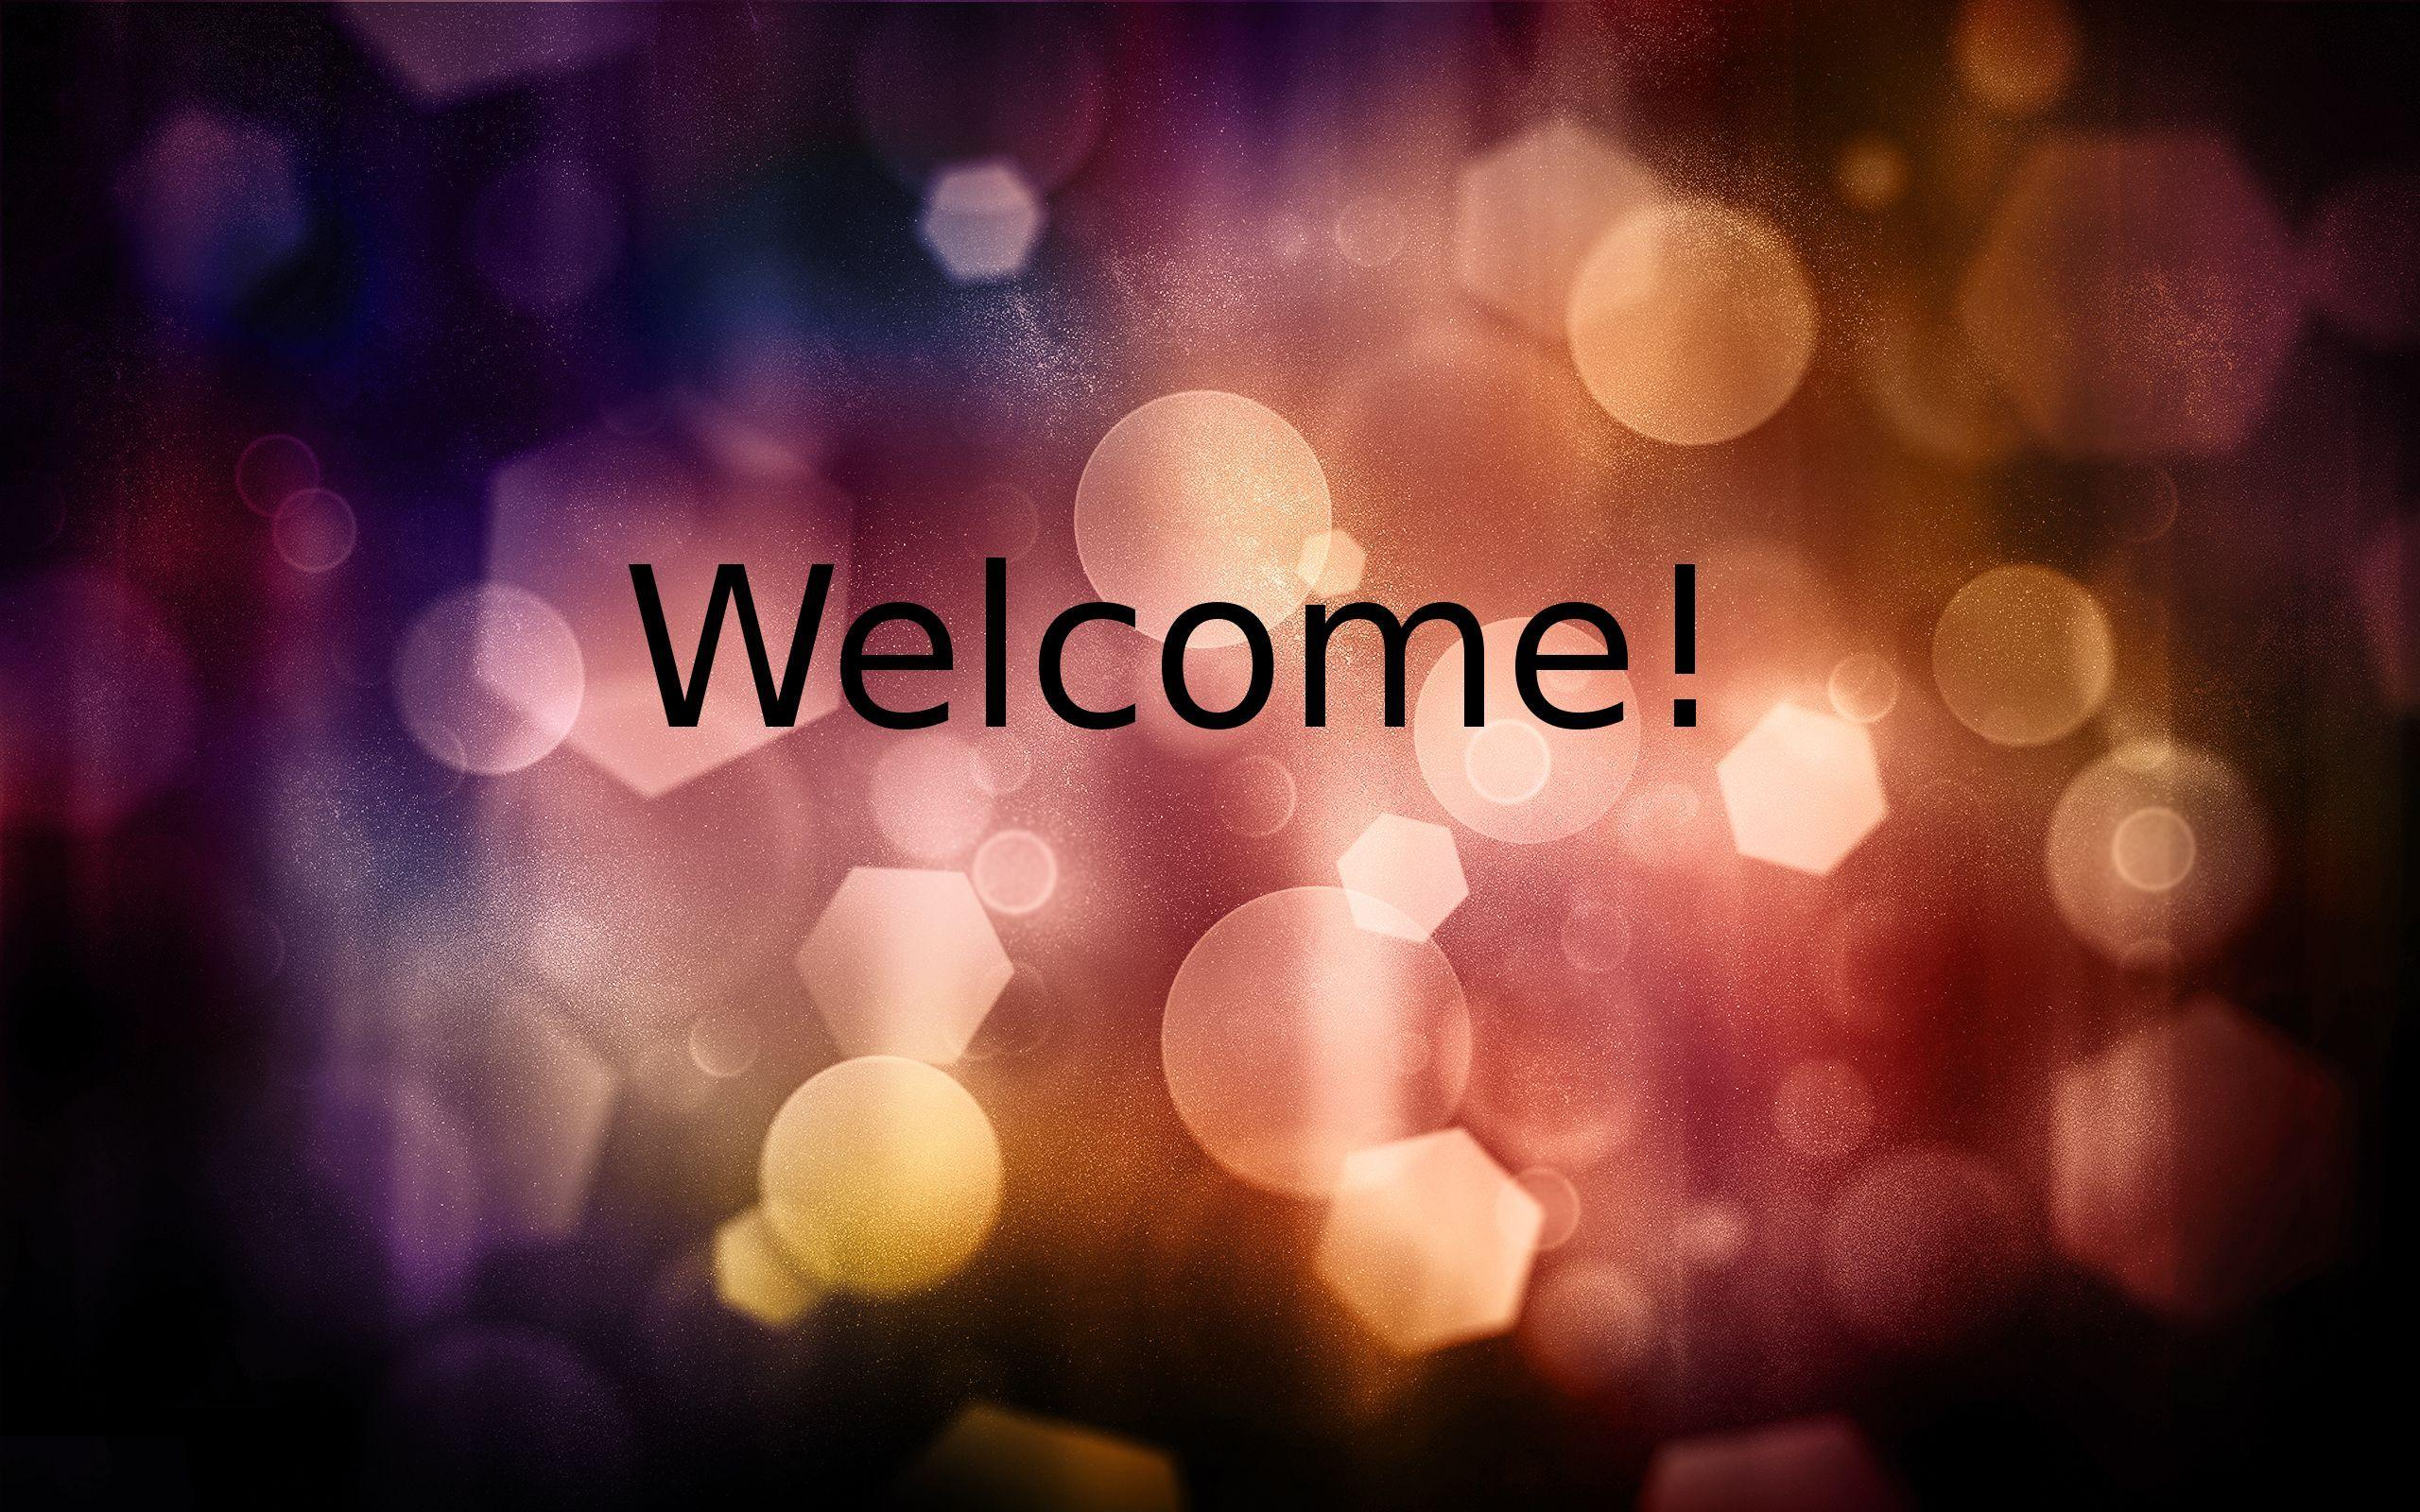 welcome wallpapers wallpaper cave welcome wallpapers wallpaper cave